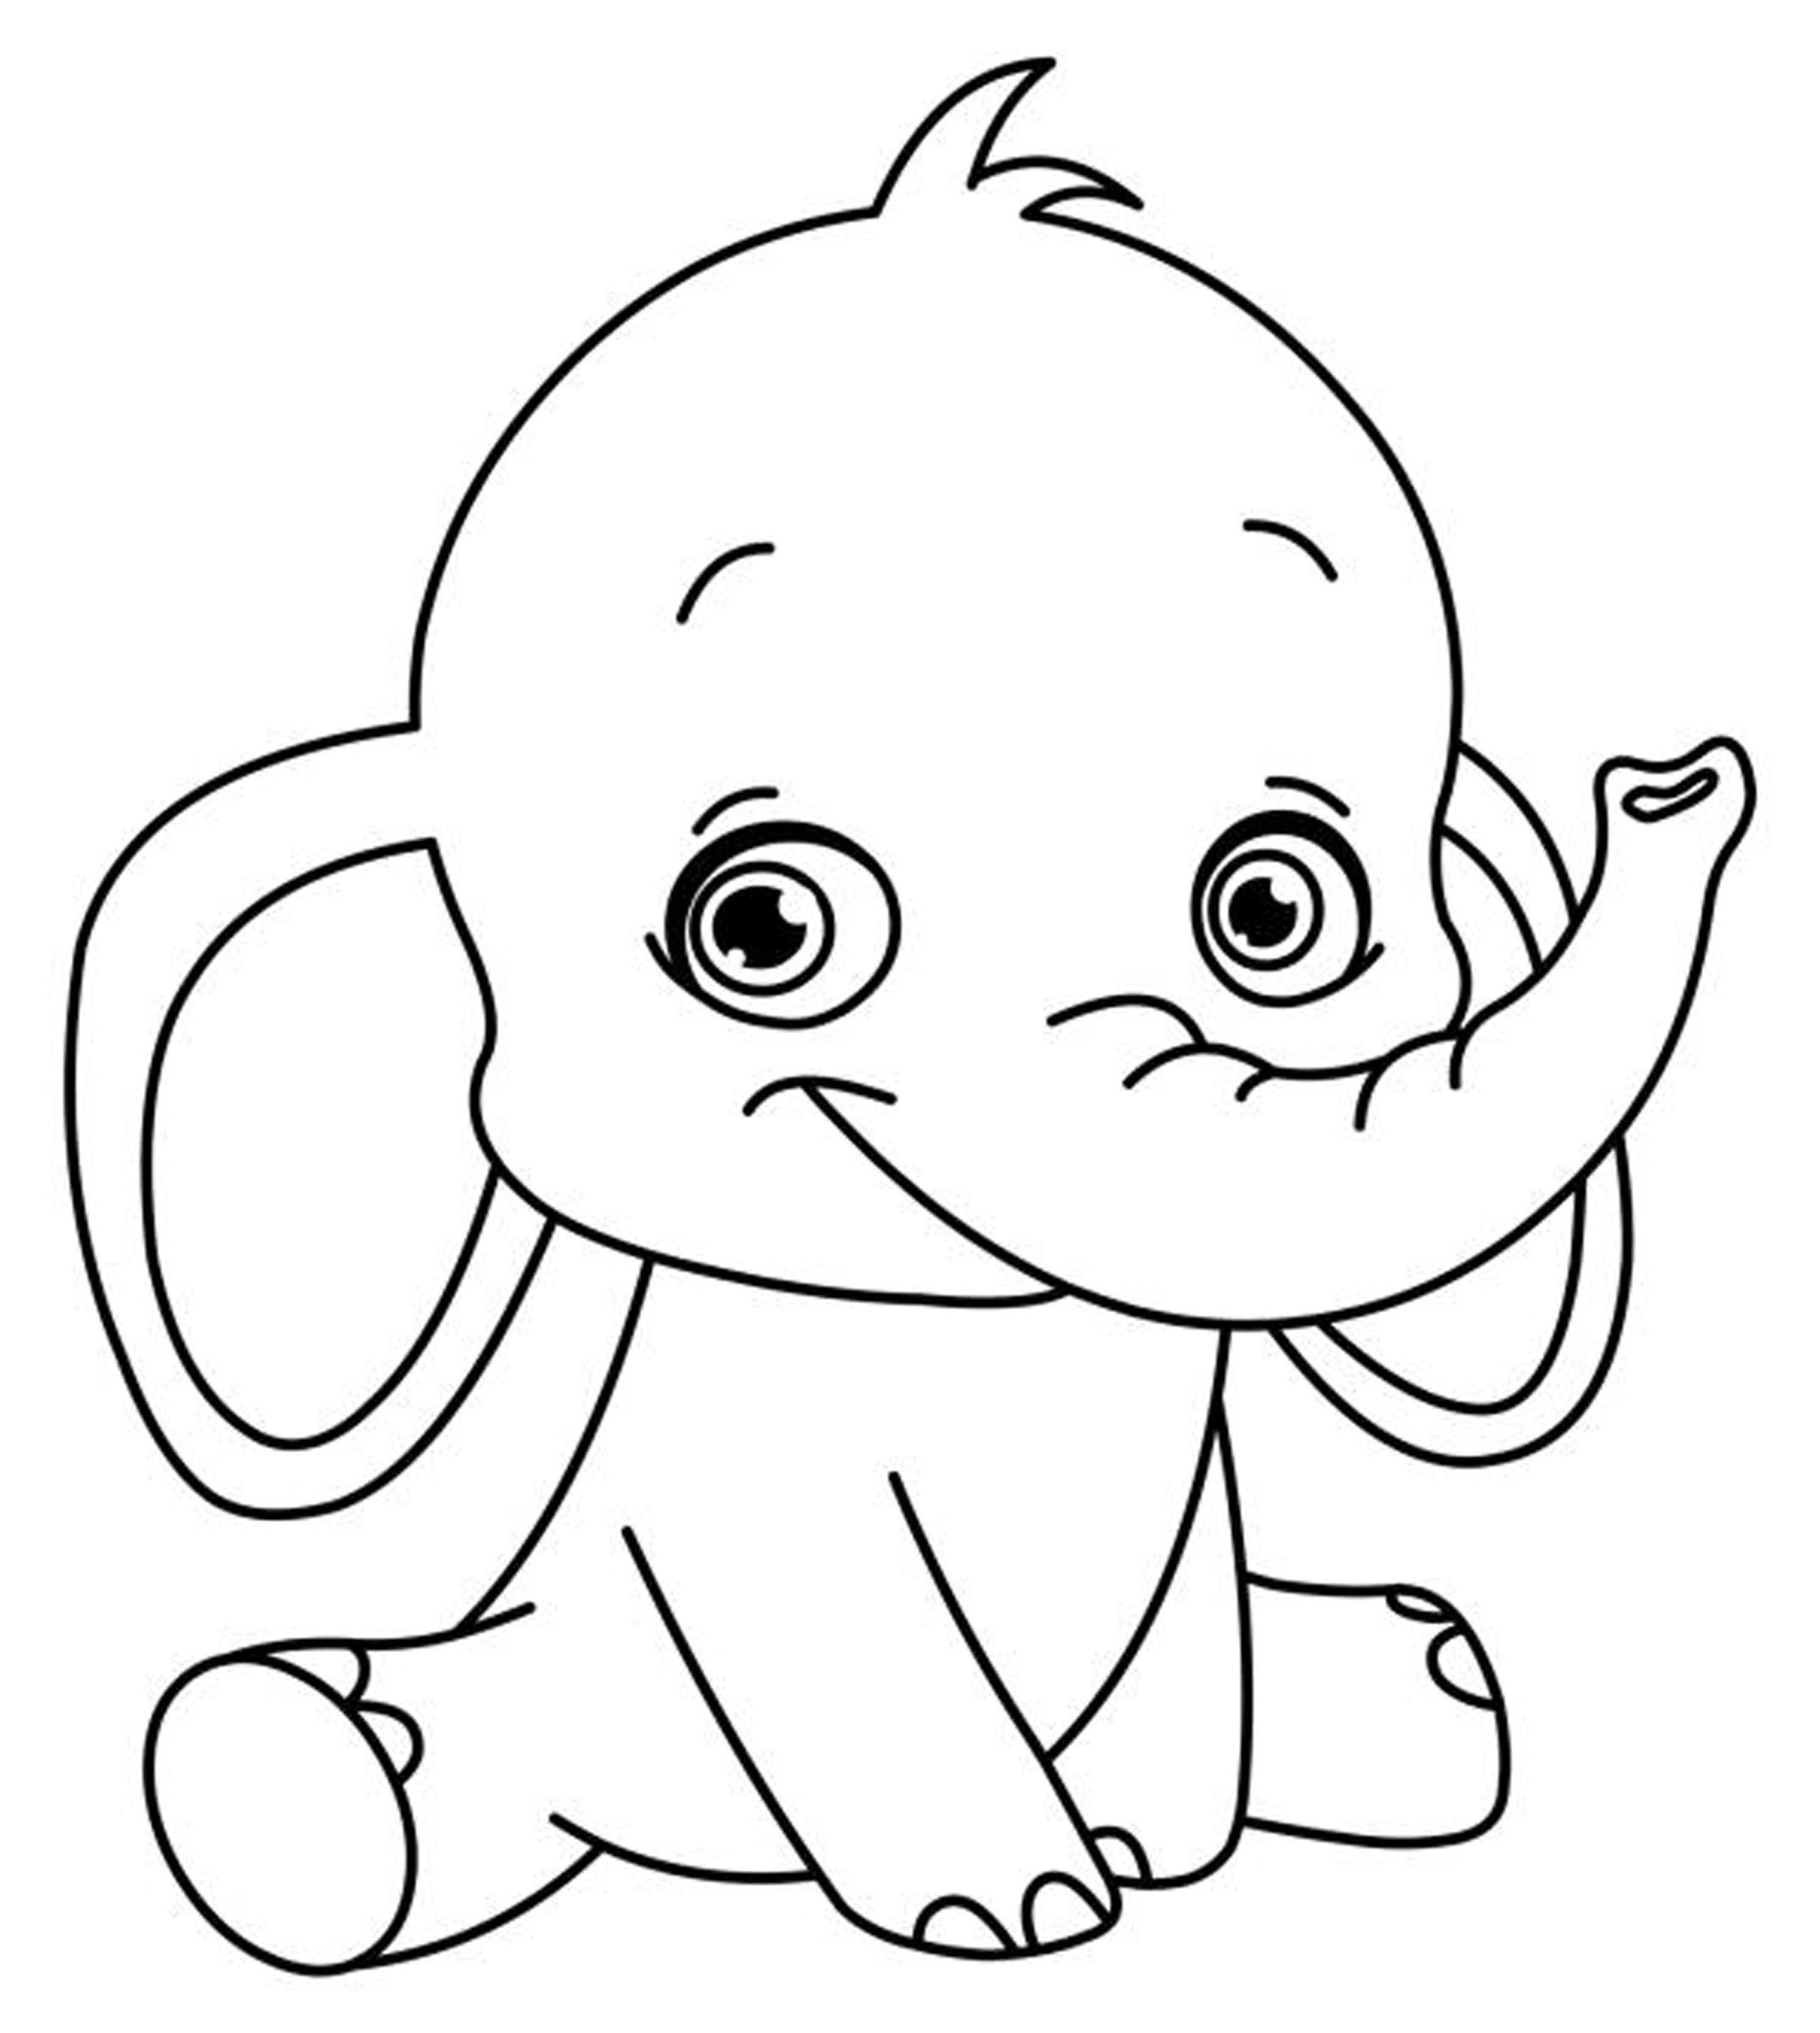 Free Printable Disney Coloring Pages Printable Kids Colouring Pages ...